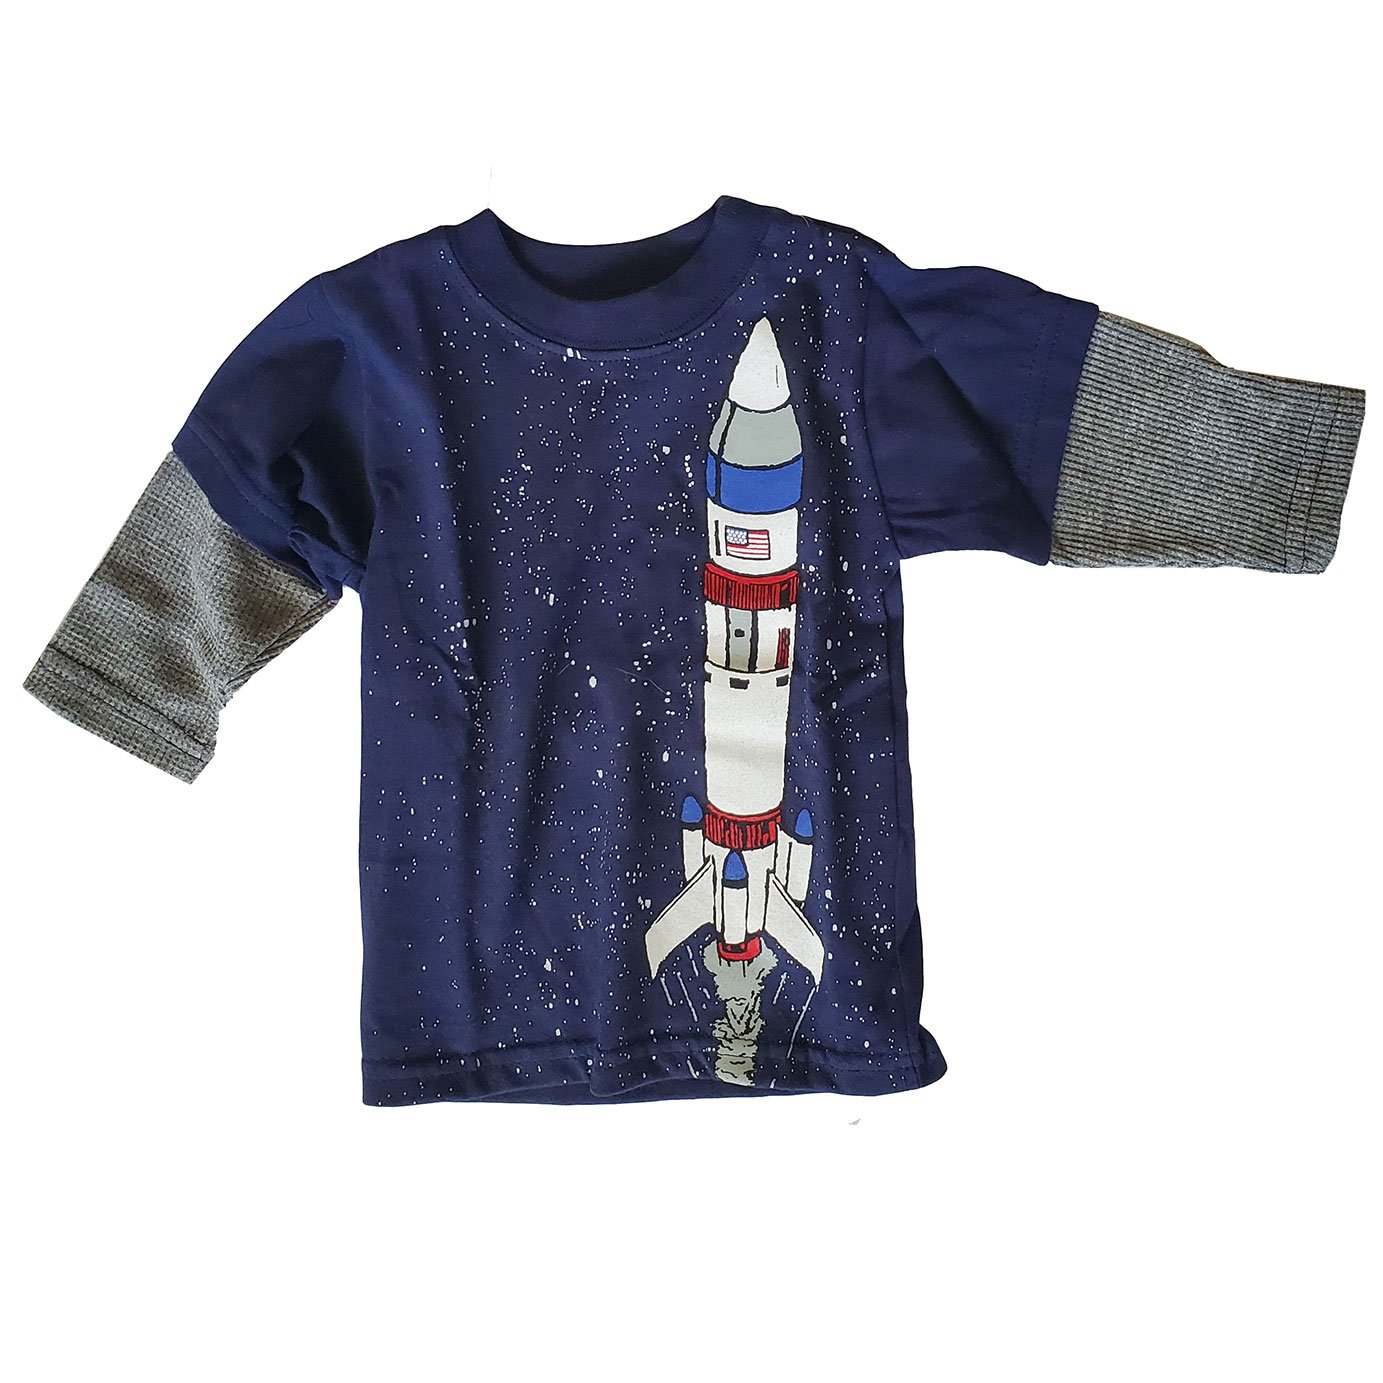 Baby Boy's Mission to Mars Twofer by Tumbleweed - The Boy's Store